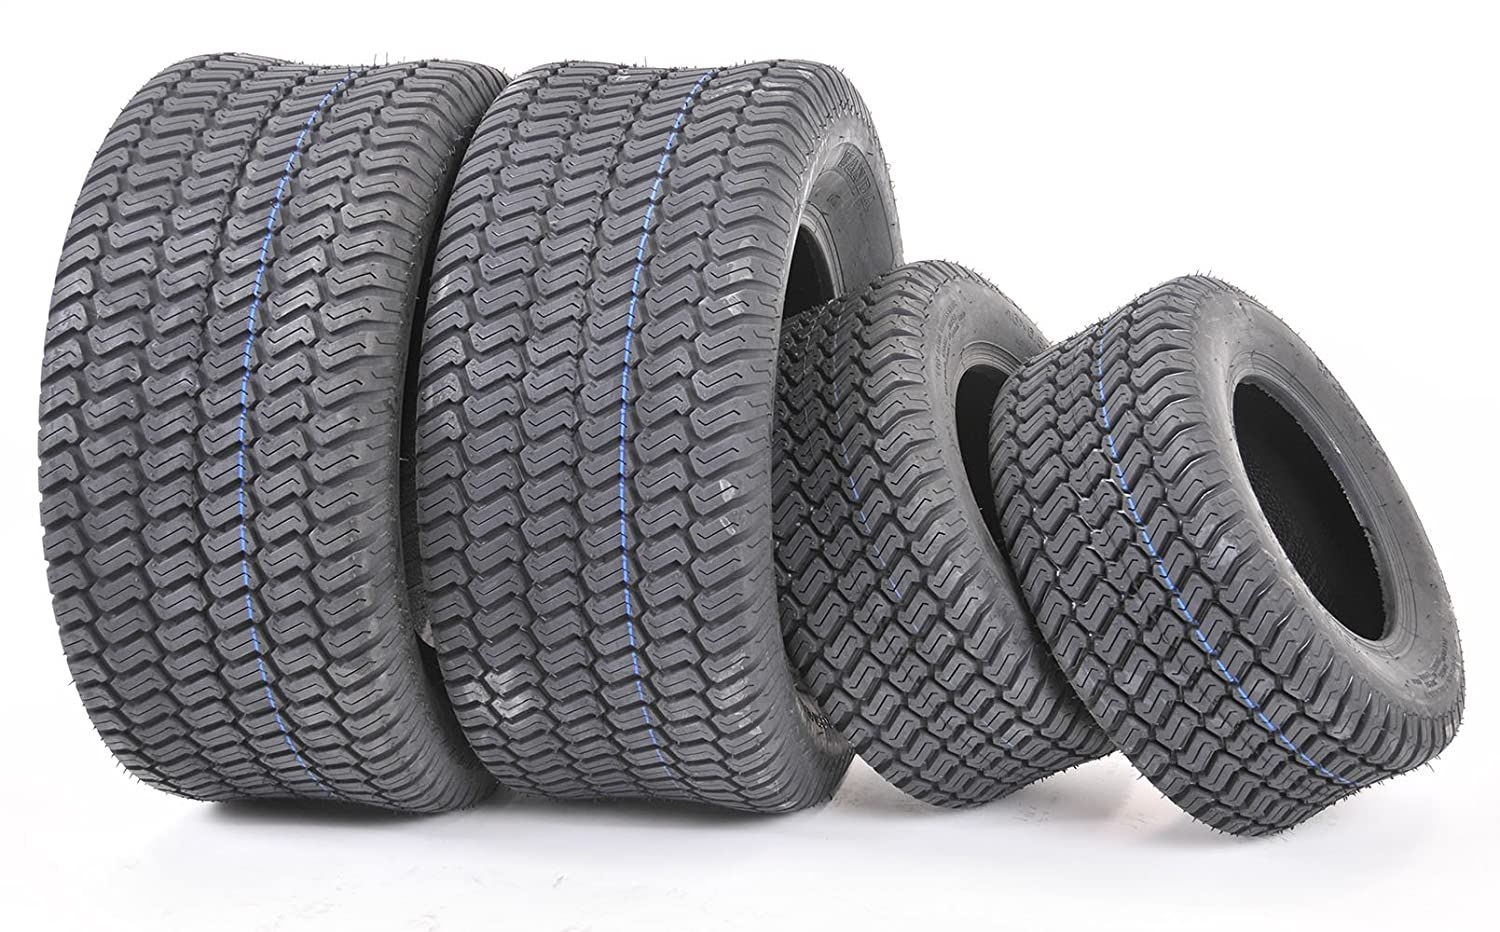 Wanda Set Of 4 New Lawn Mower Turf Tires 15x6 6 Front And 20x10 8 Rear 4pr 13016 13040 See This Great Product In 2020 Lawn Mower Tires Lawn Mower Lawn And Garden